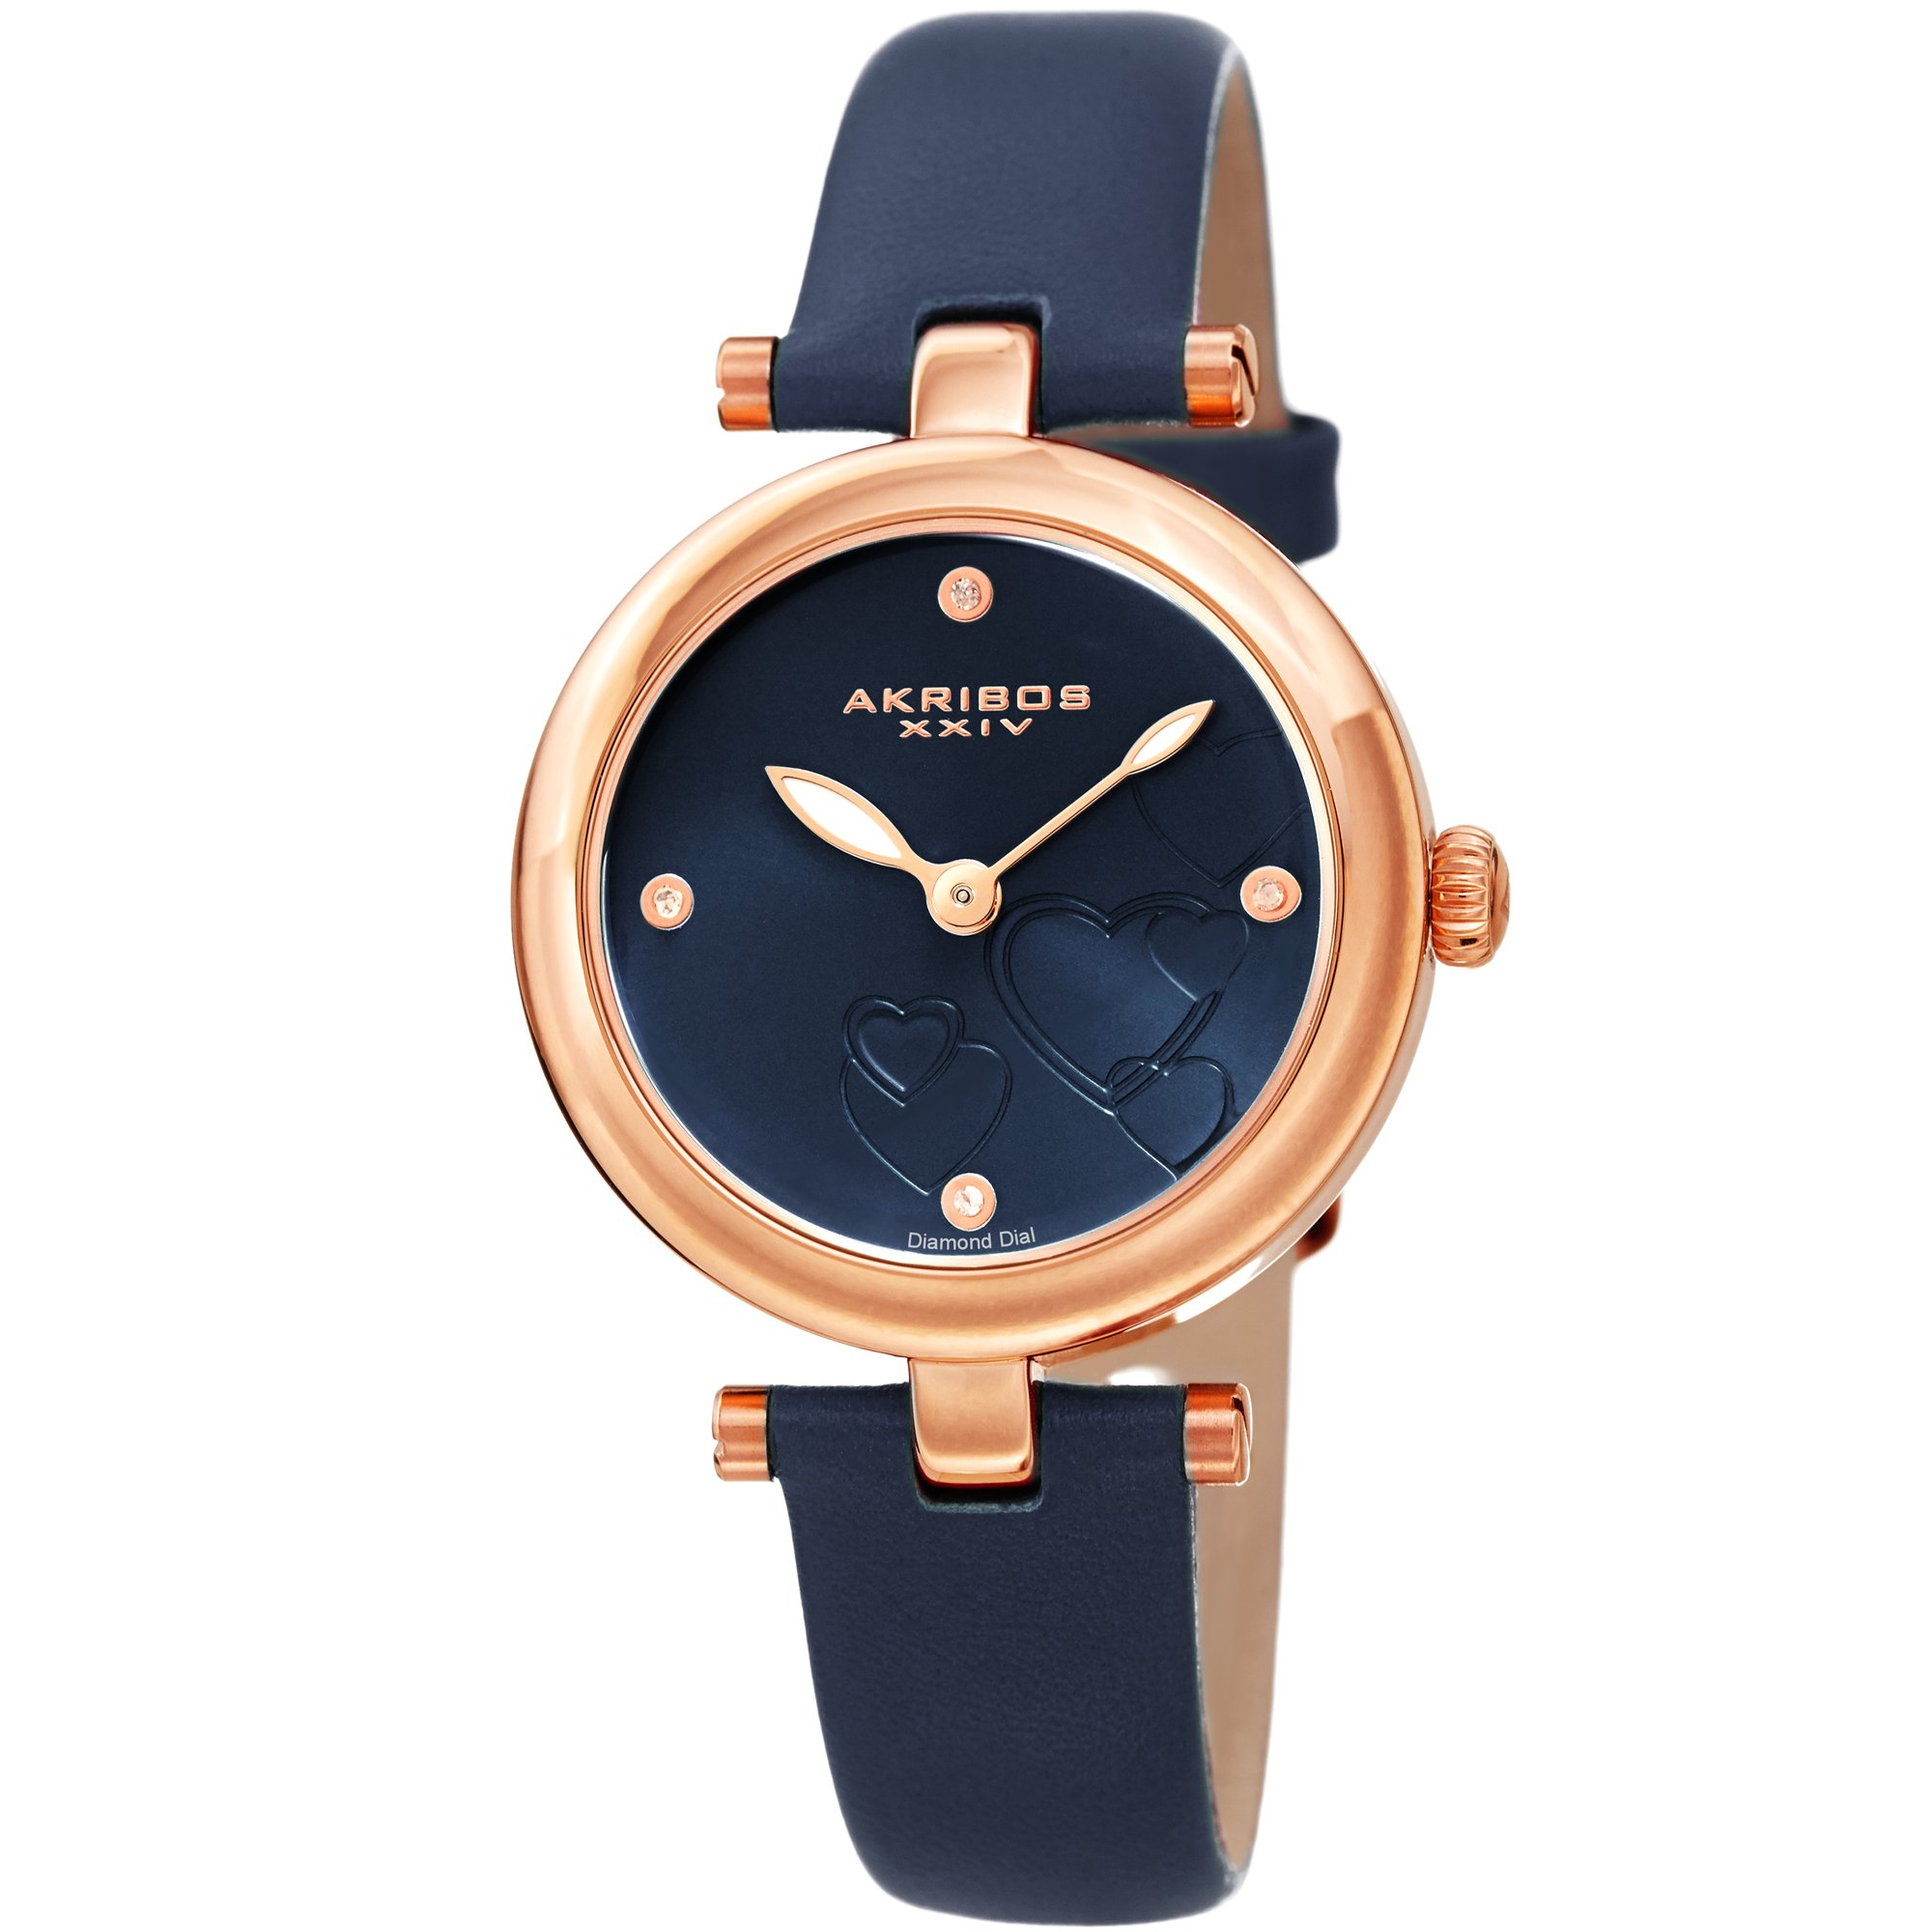 Akribos XXIV Women's Diamond Accented Heart Engraved Dial Blue Leather Strap Watch - Packed in a Beautiful Gift Box, Perfect for Mothers Day- AK1044BU